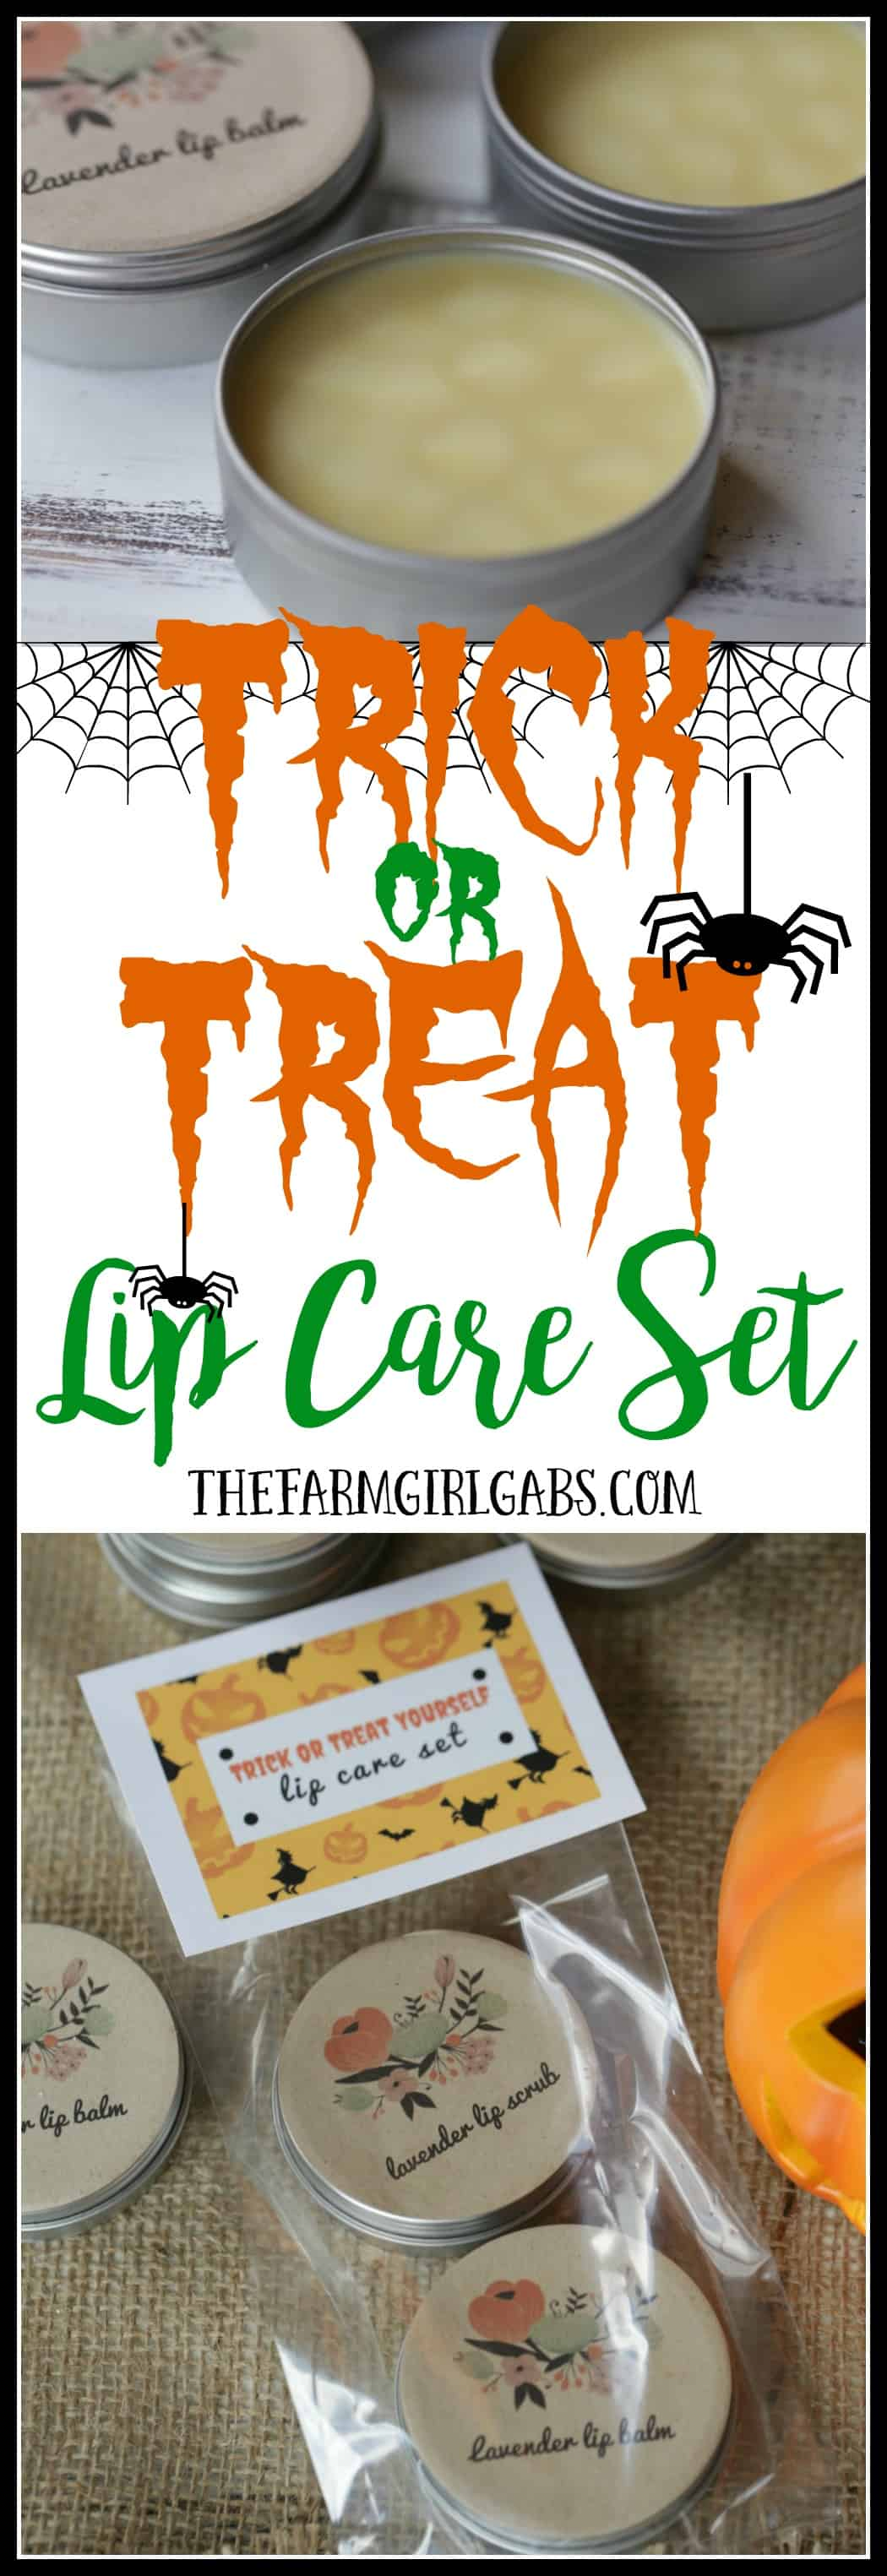 Your ghoul-friends will love getting their own special Halloween treat this year. This Trick or Treat Yourself Lip Care Set is the perfect way to treat the grown-ups with a pampering treat this Halloween. #Ad #StimulateTheSenses